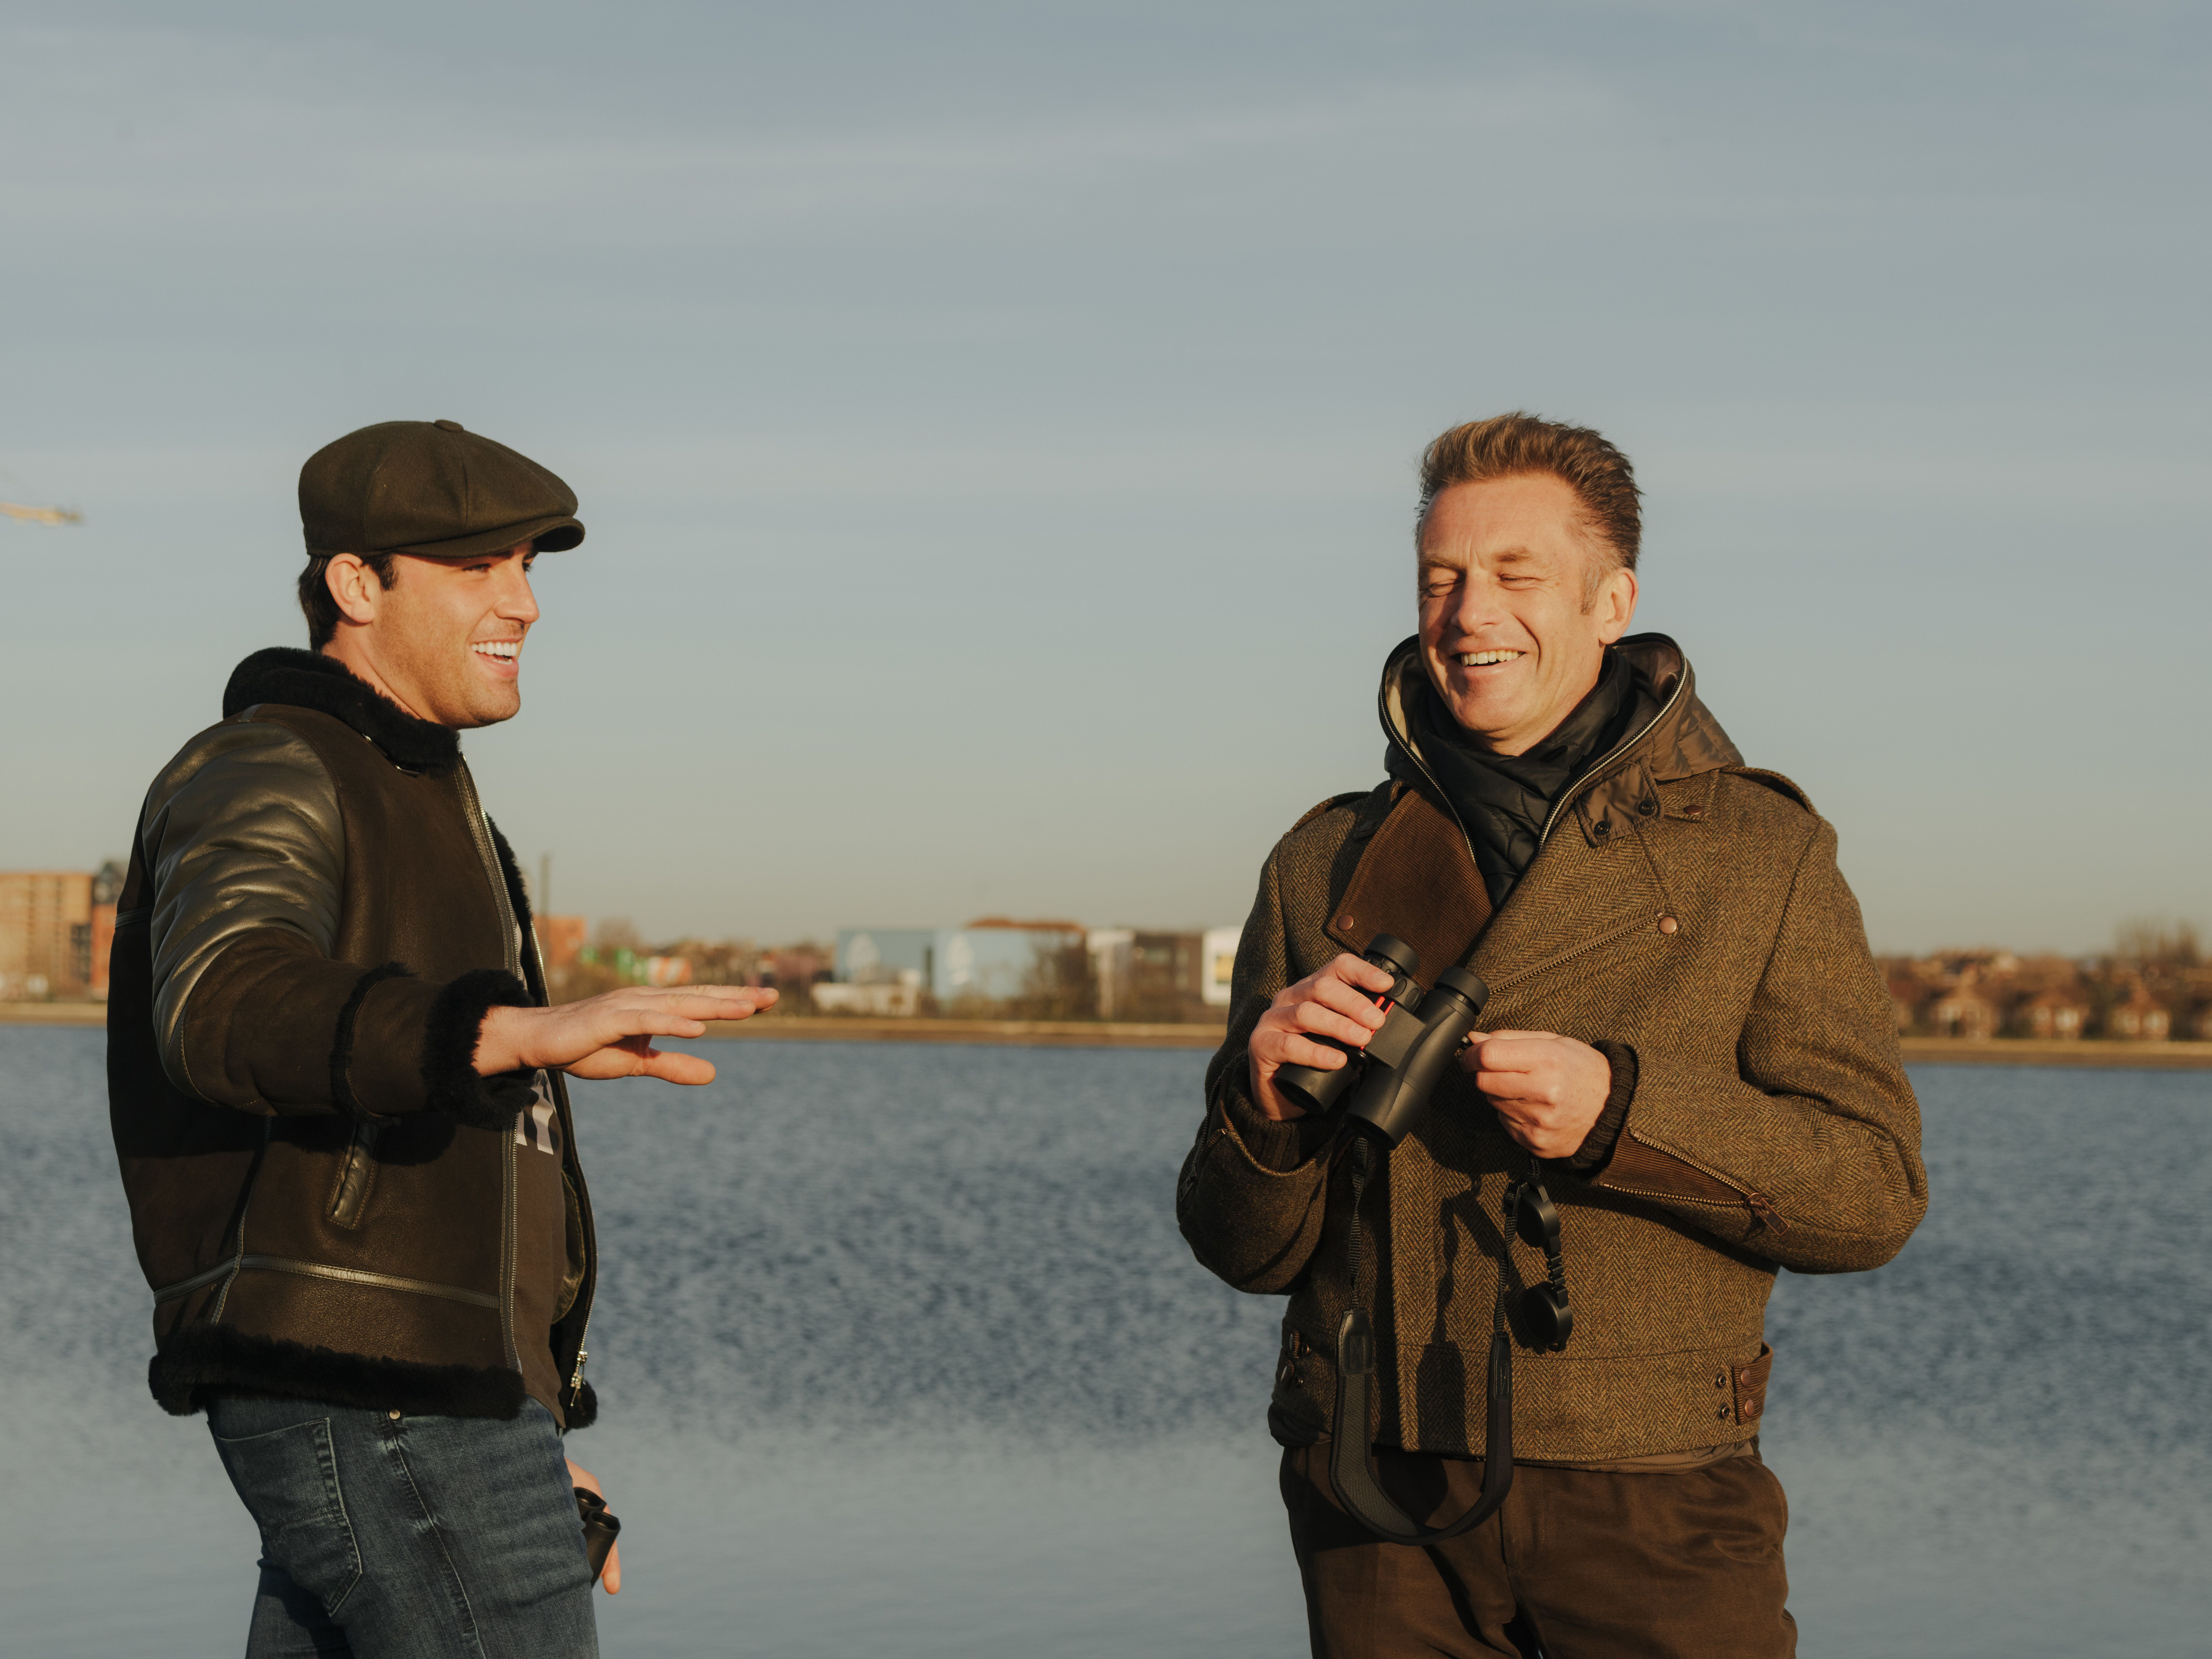 Chris Packham And Love Island's Jack Fincham Went On A BBC 'Nature Date' – Here's What We